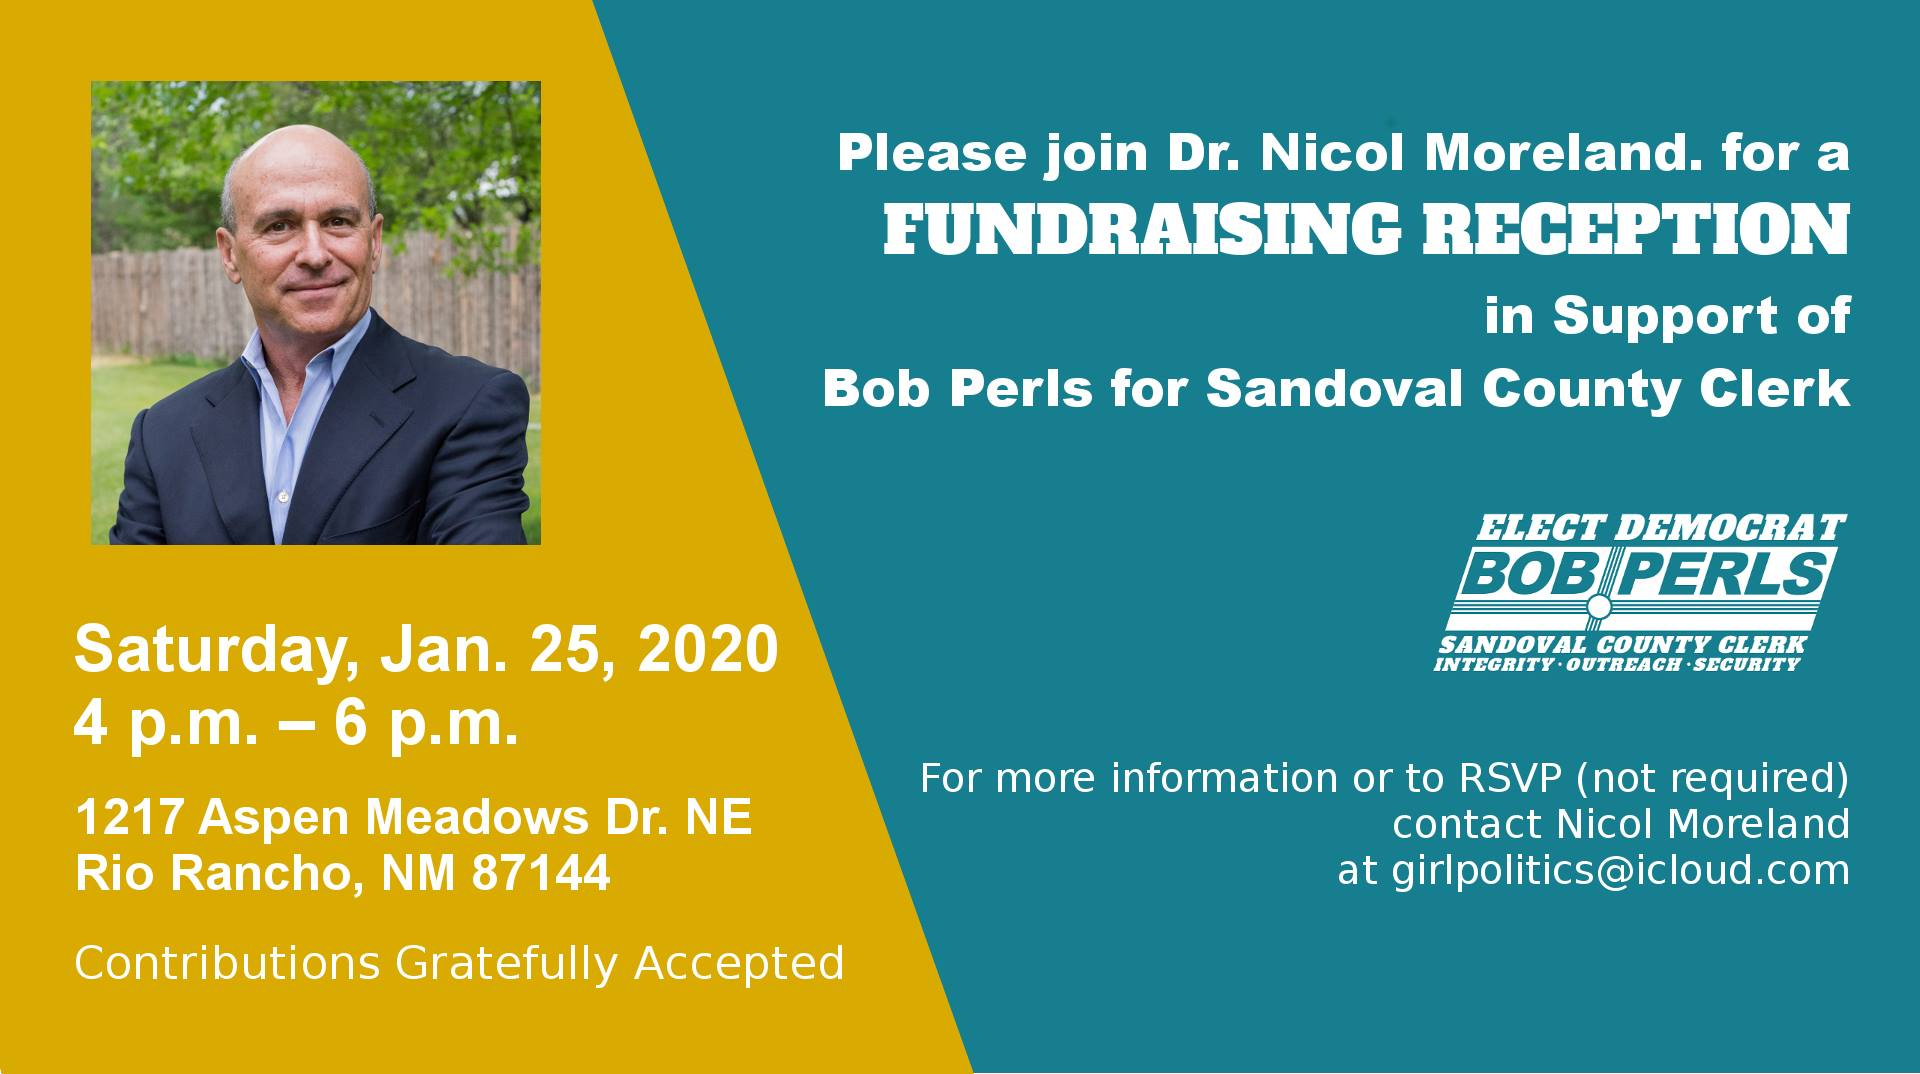 Bob Perls for Sandoval County Clerk @ Rio Rancho | New Mexico | United States